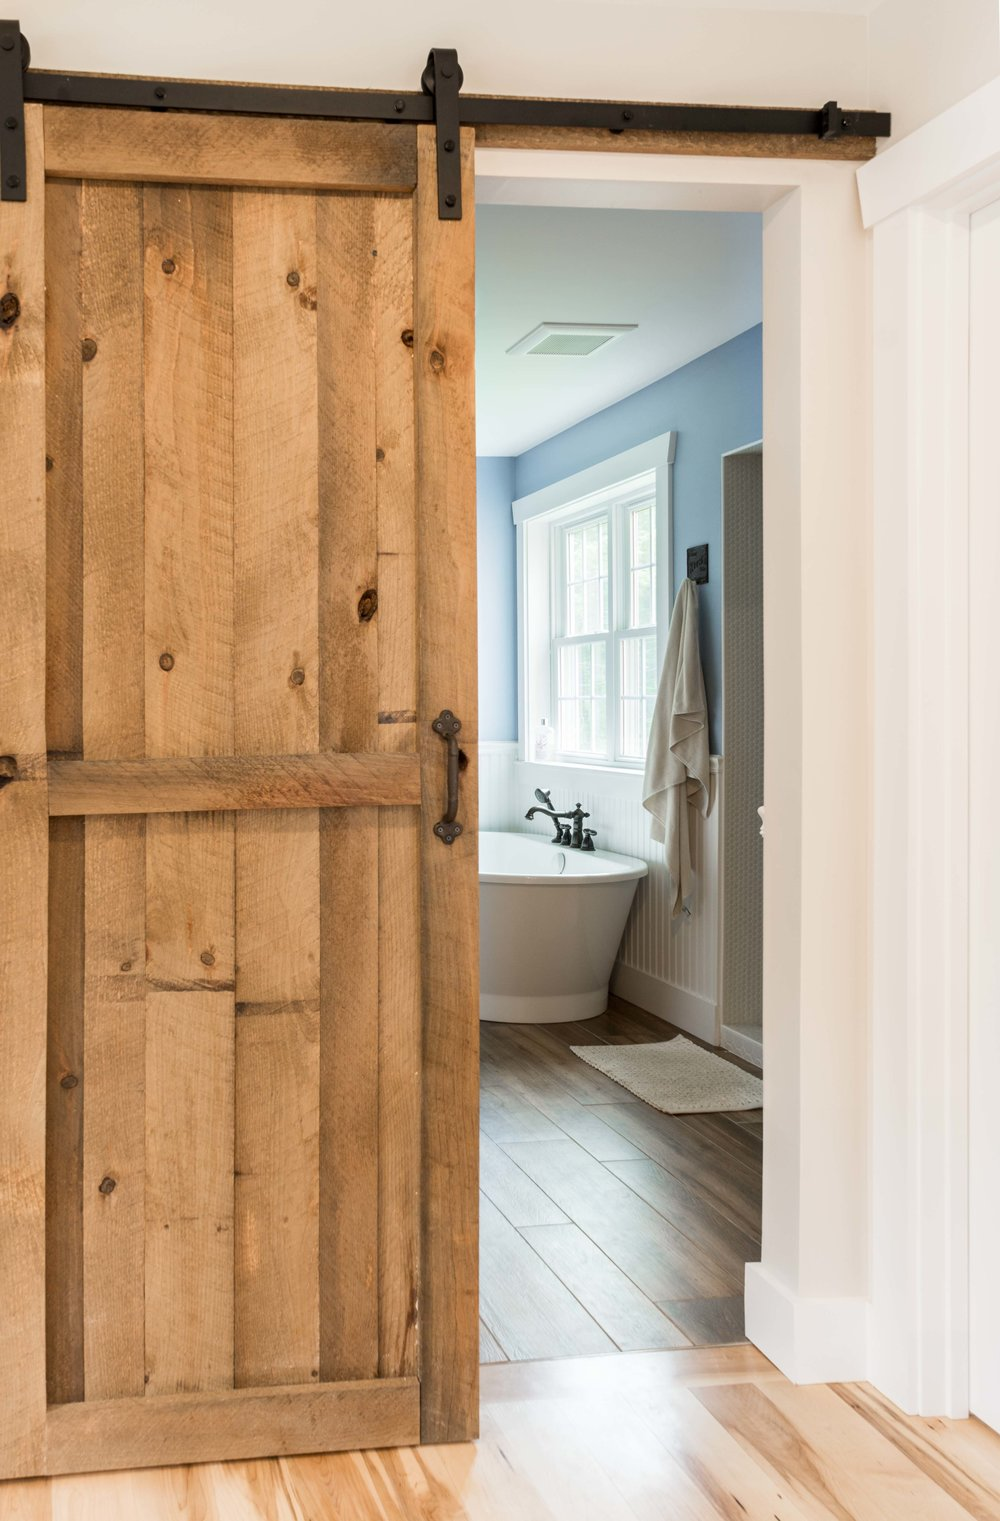 The sliding barn door was also made by the homeowner, and stained in Early American. The bathroom paint color is Notable Hue.